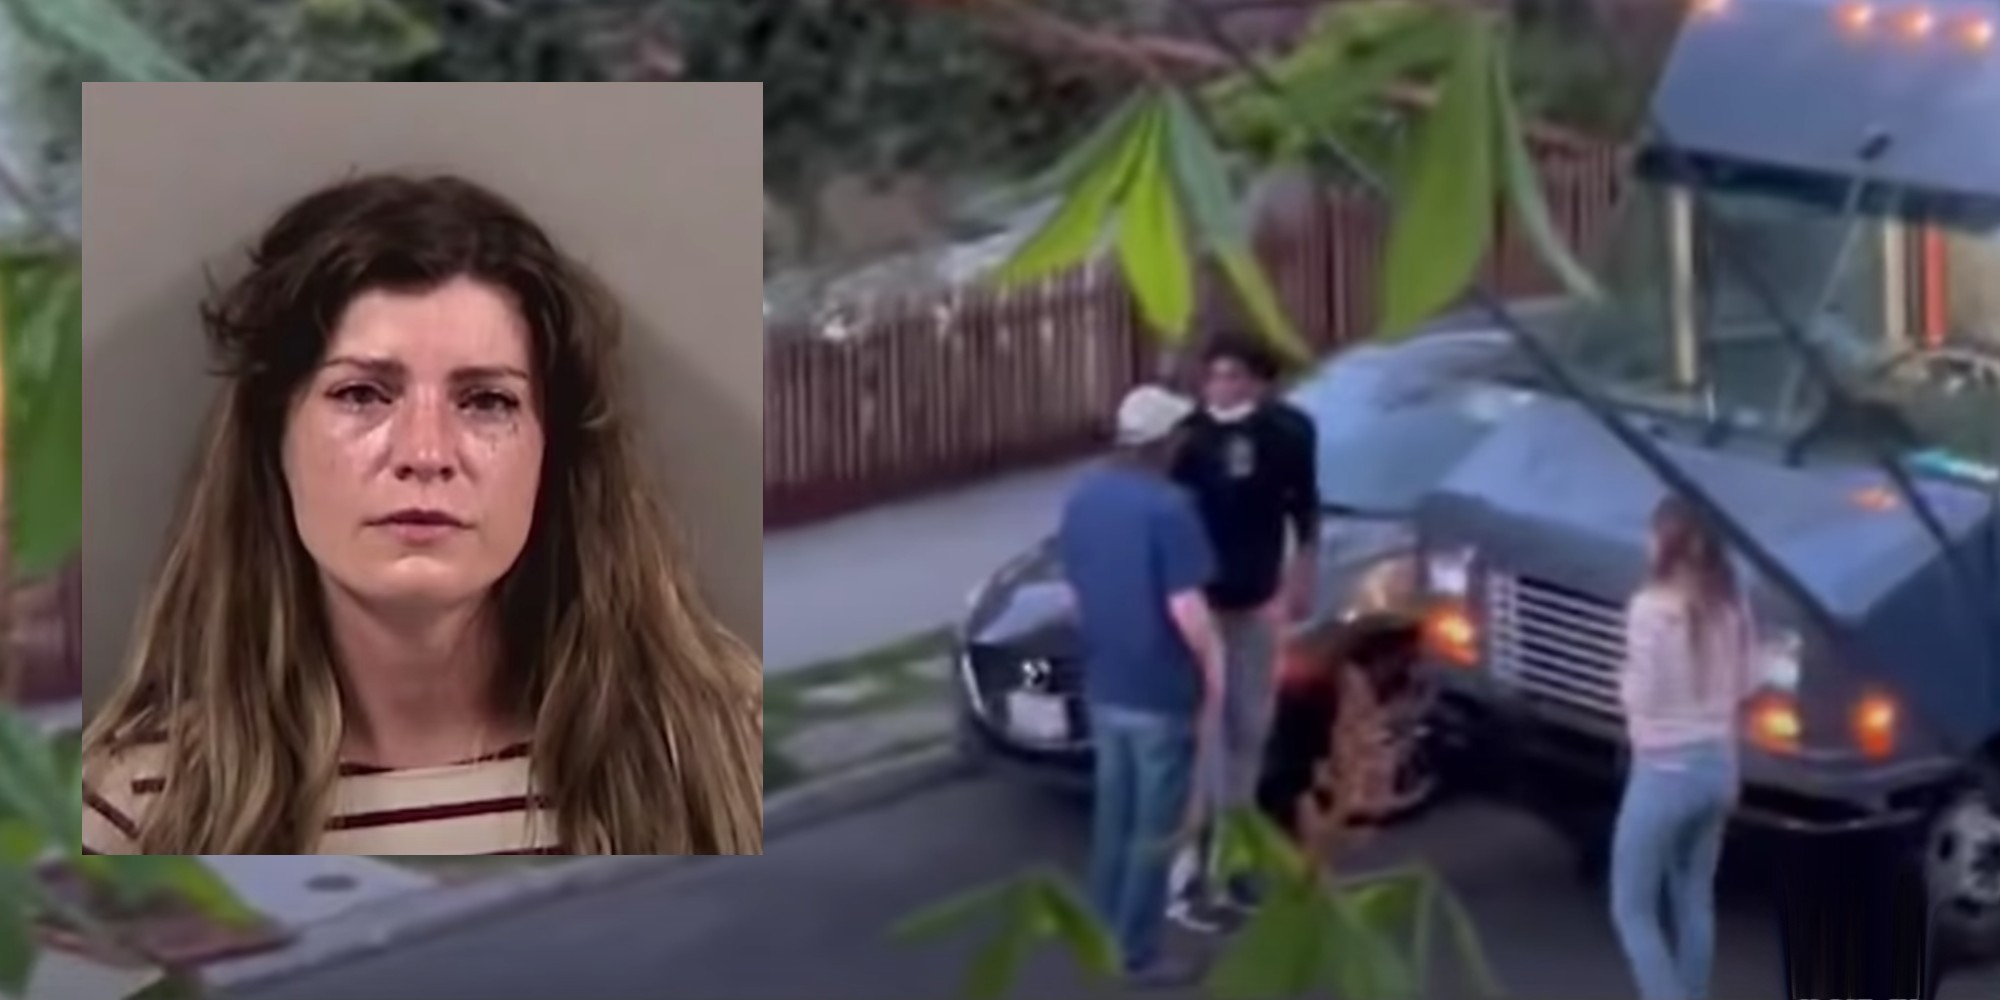 Woman Being Charged With A Hate Crime For False Imprisonment Plus Of An Amazon Driver  [VIDEO]